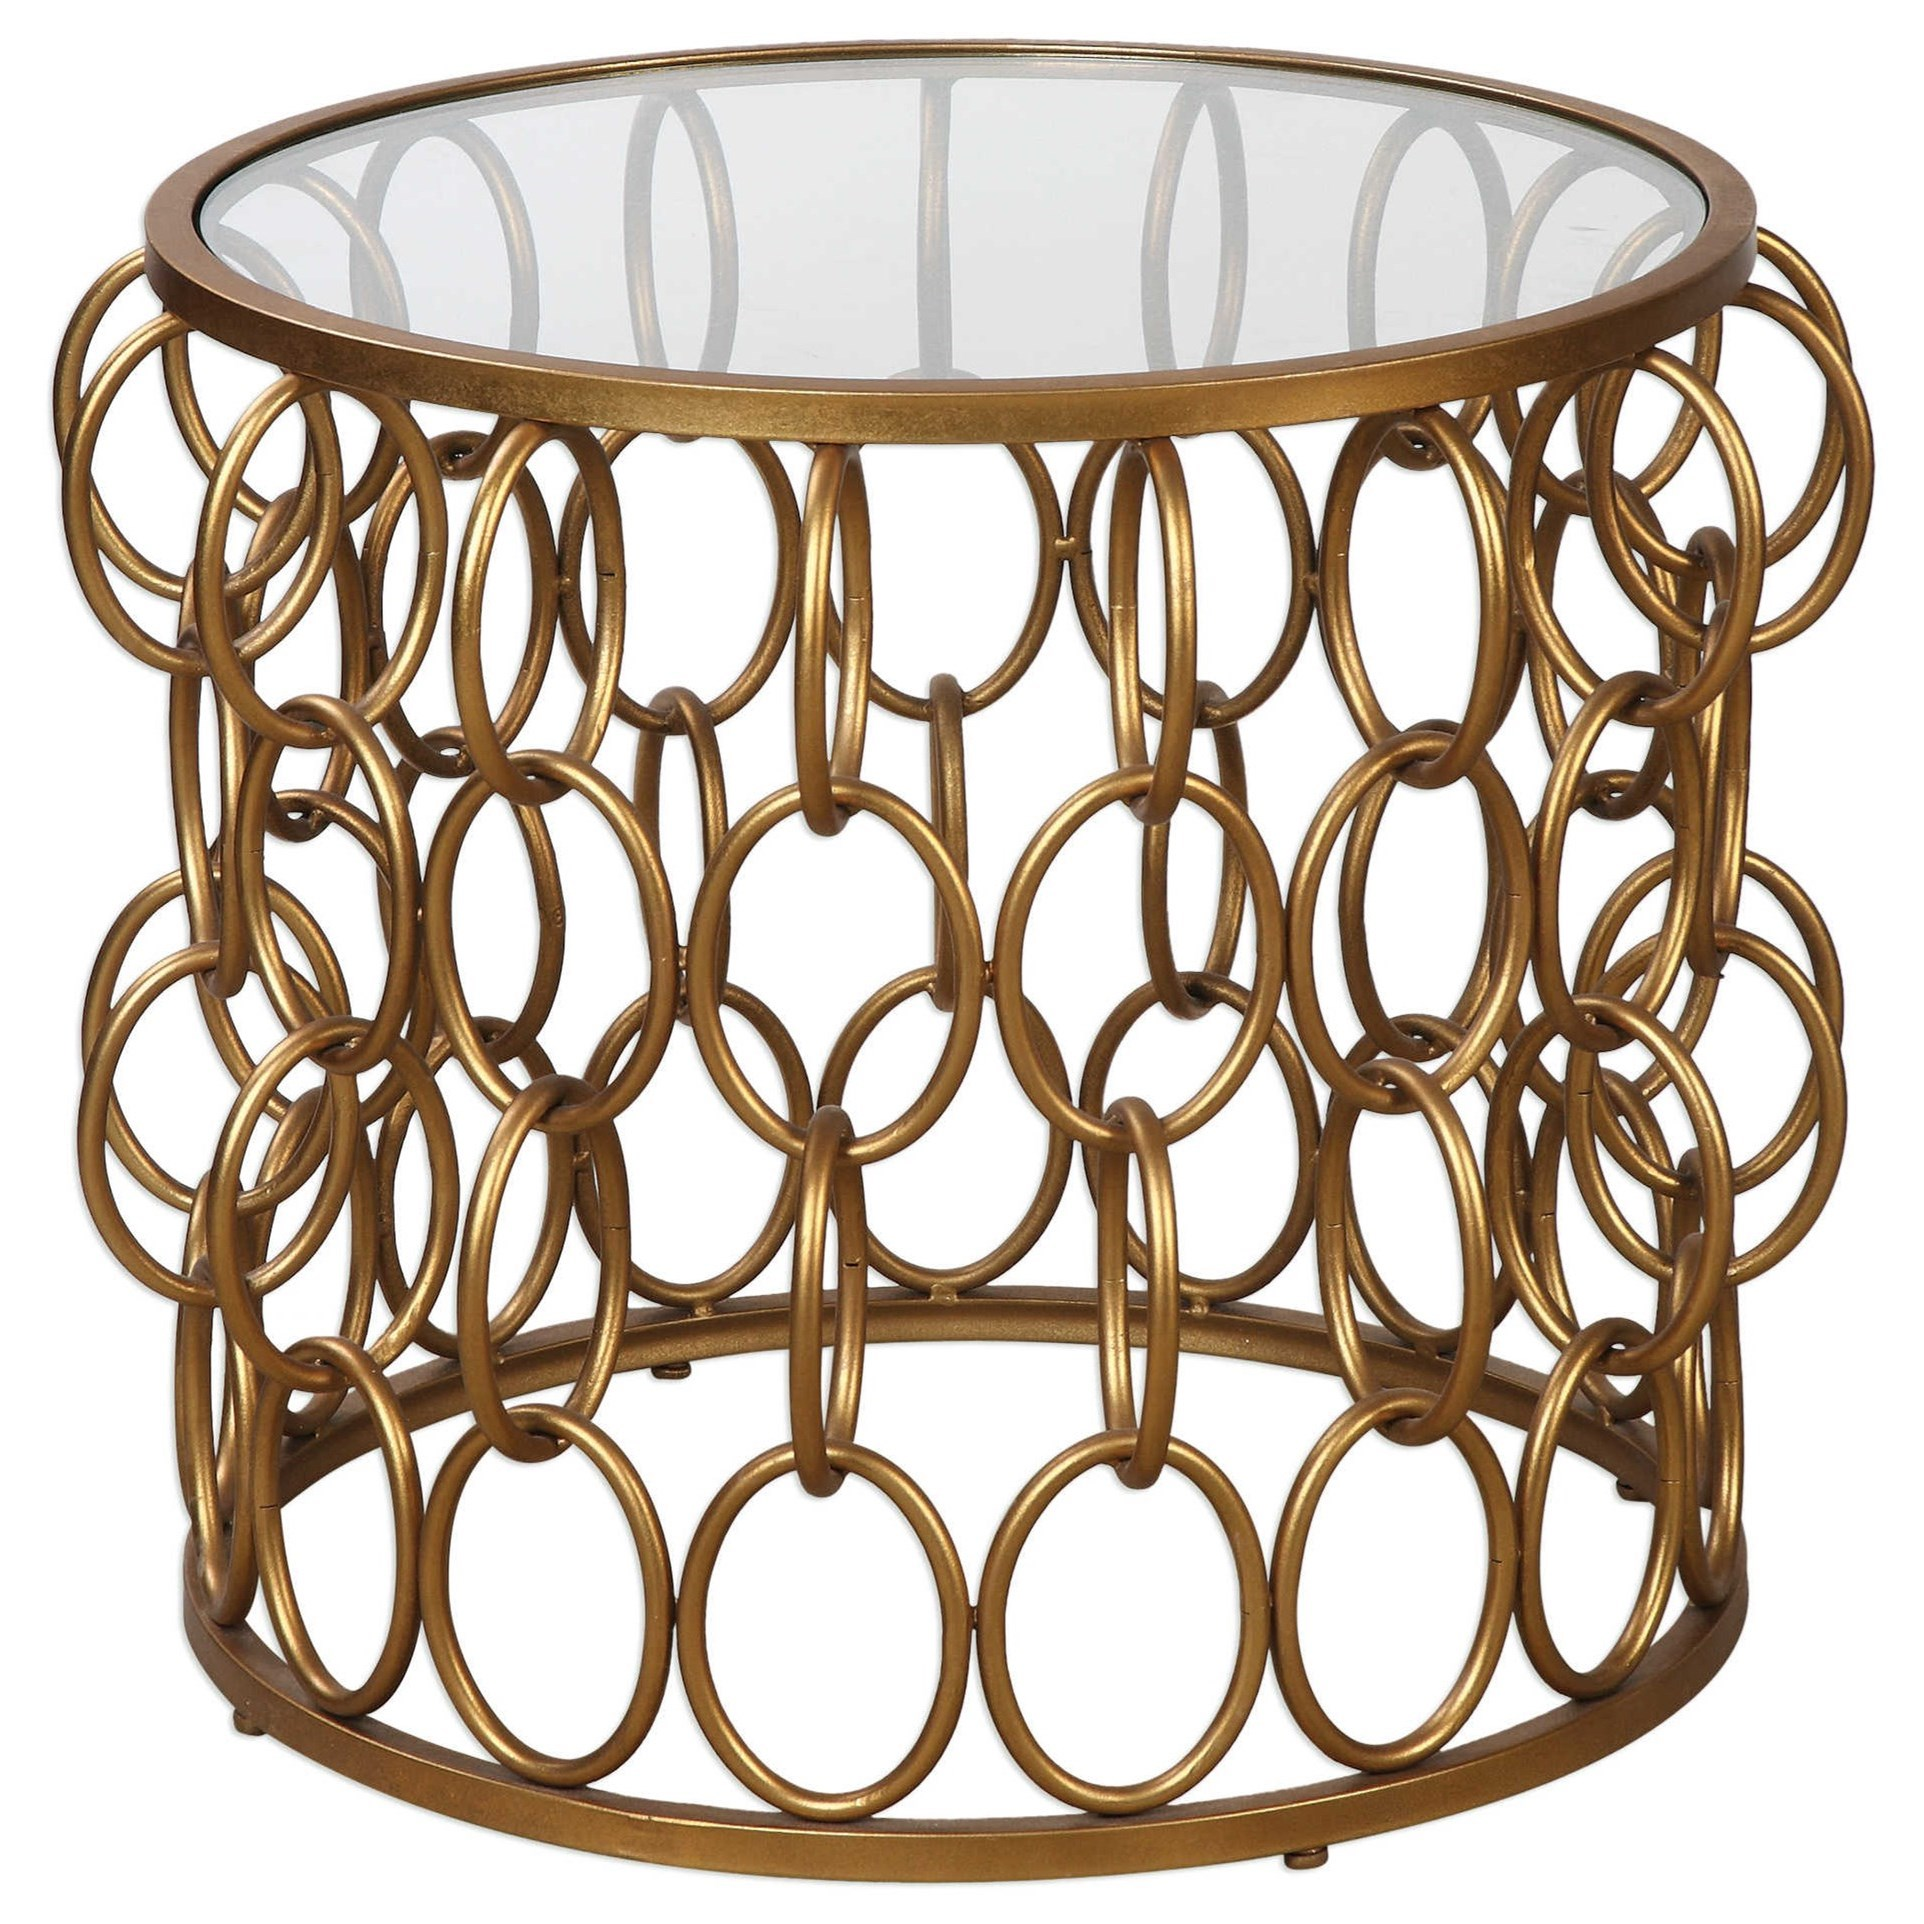 Uttermost Accent Furniture Dipali Gold Accent Table - Item Number: 24710